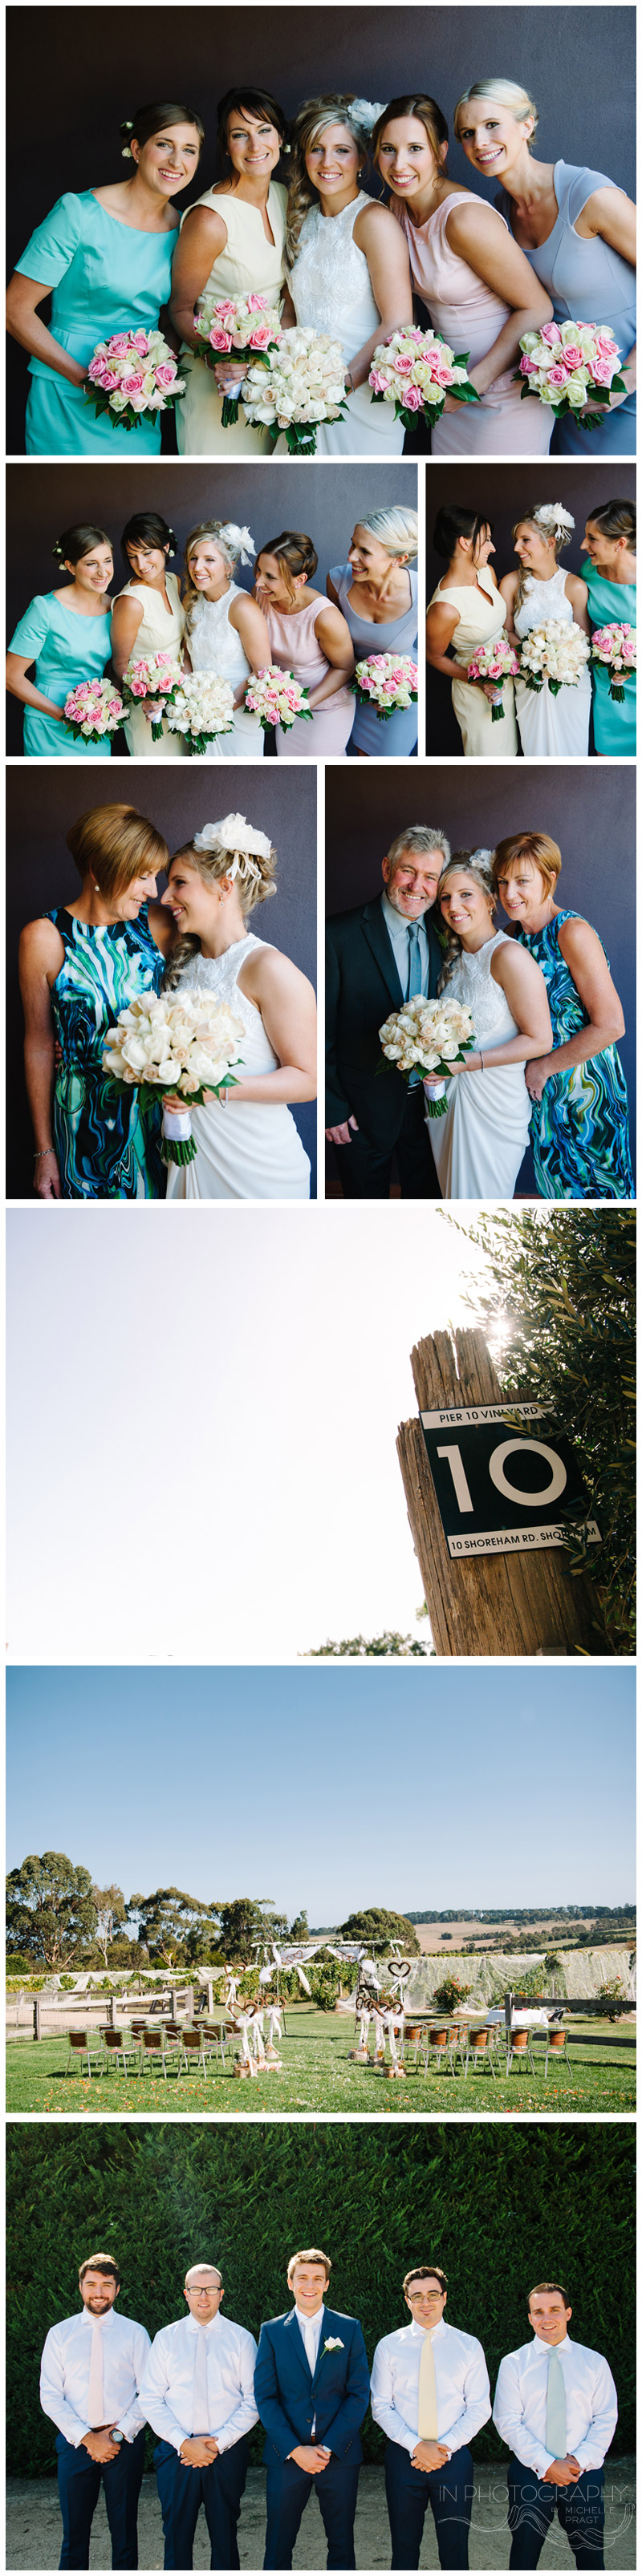 wedding at Pier 10 in Red Hill